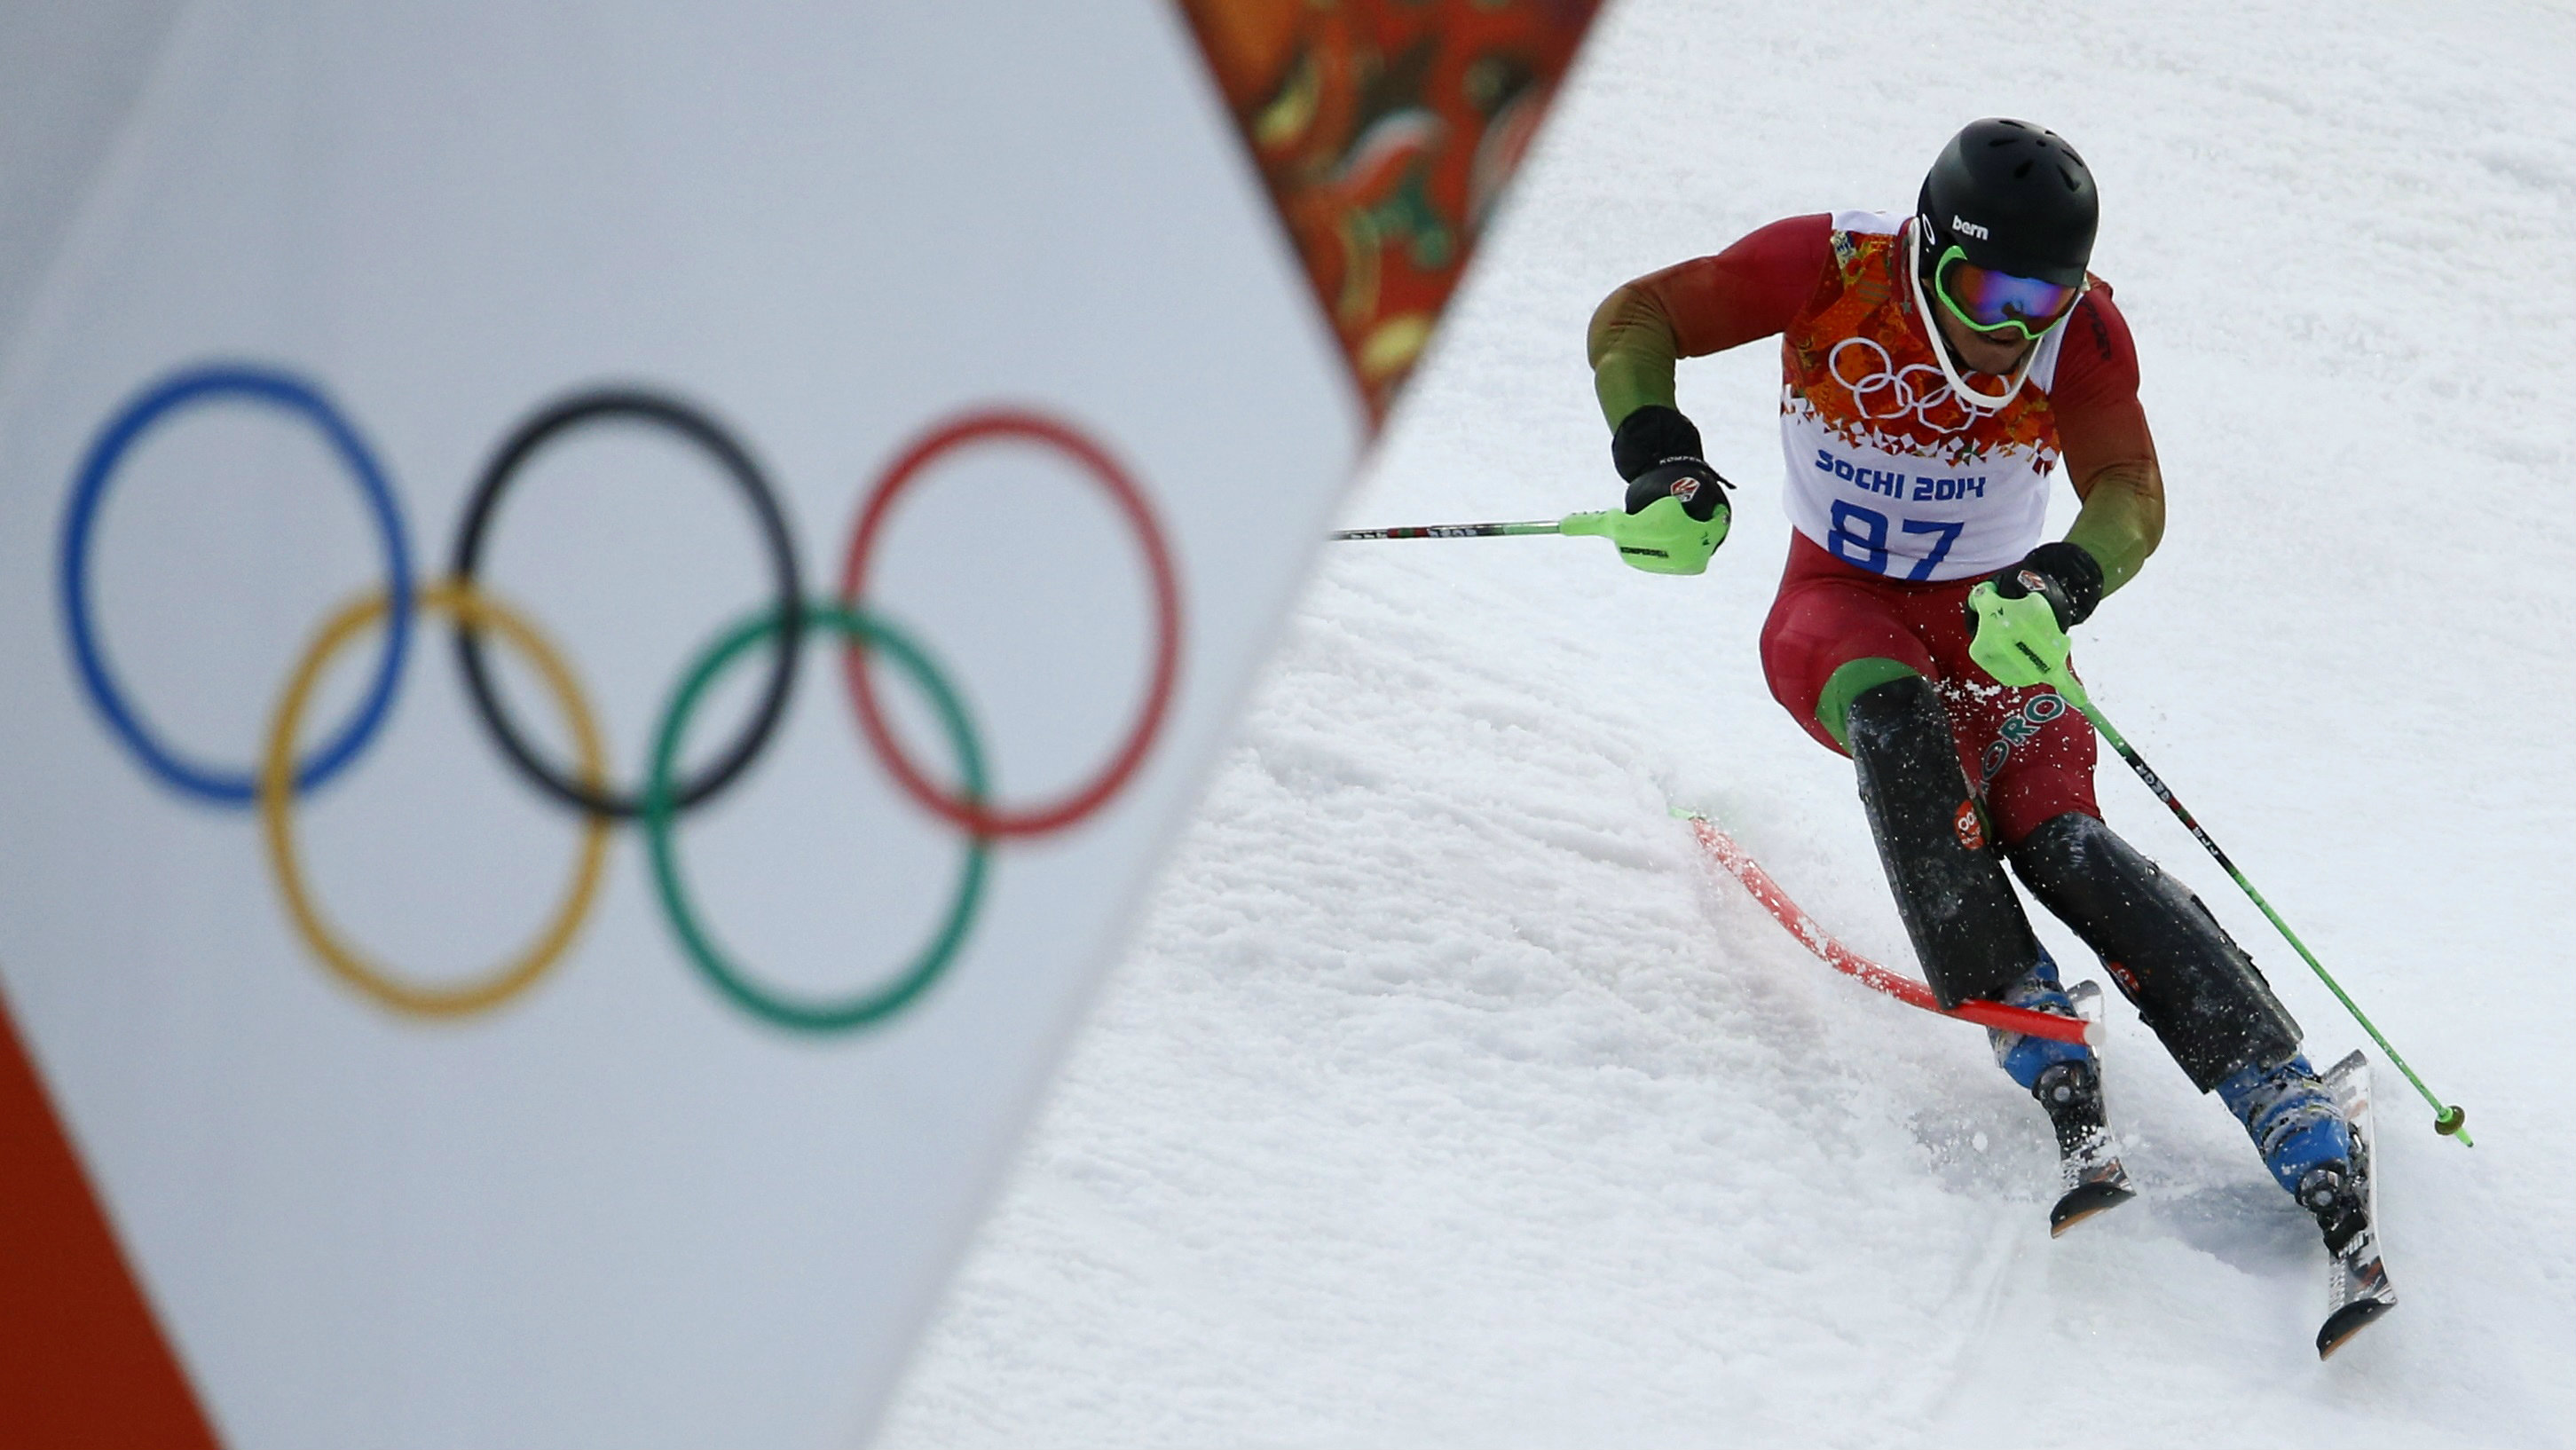 Morocco's Adam Lamhamedi clears a pole as he competes in the first run of the men's alpine skiing slalom event during the 2014 Sochi Winter Olympics at the Rosa Khutor Alpine Center February 22, 2014